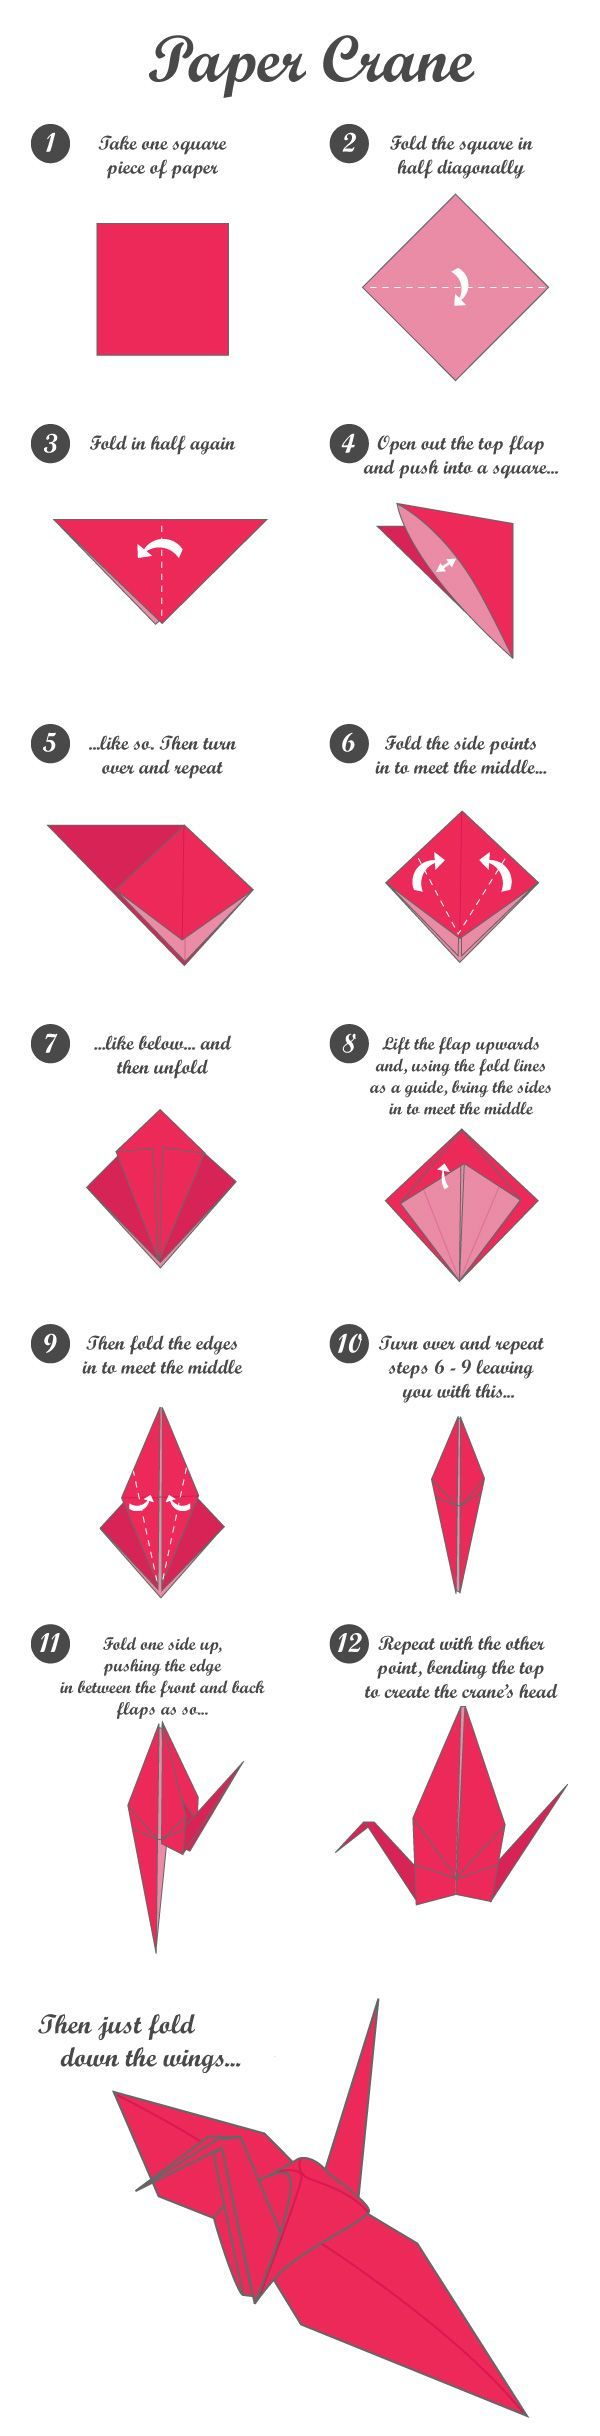 Best 25 origami paper crane ideas on pinterest paper cranes 2 best 25 origami paper crane ideas on pinterest paper cranes 2 origami cranes and origami cranes jeuxipadfo Choice Image